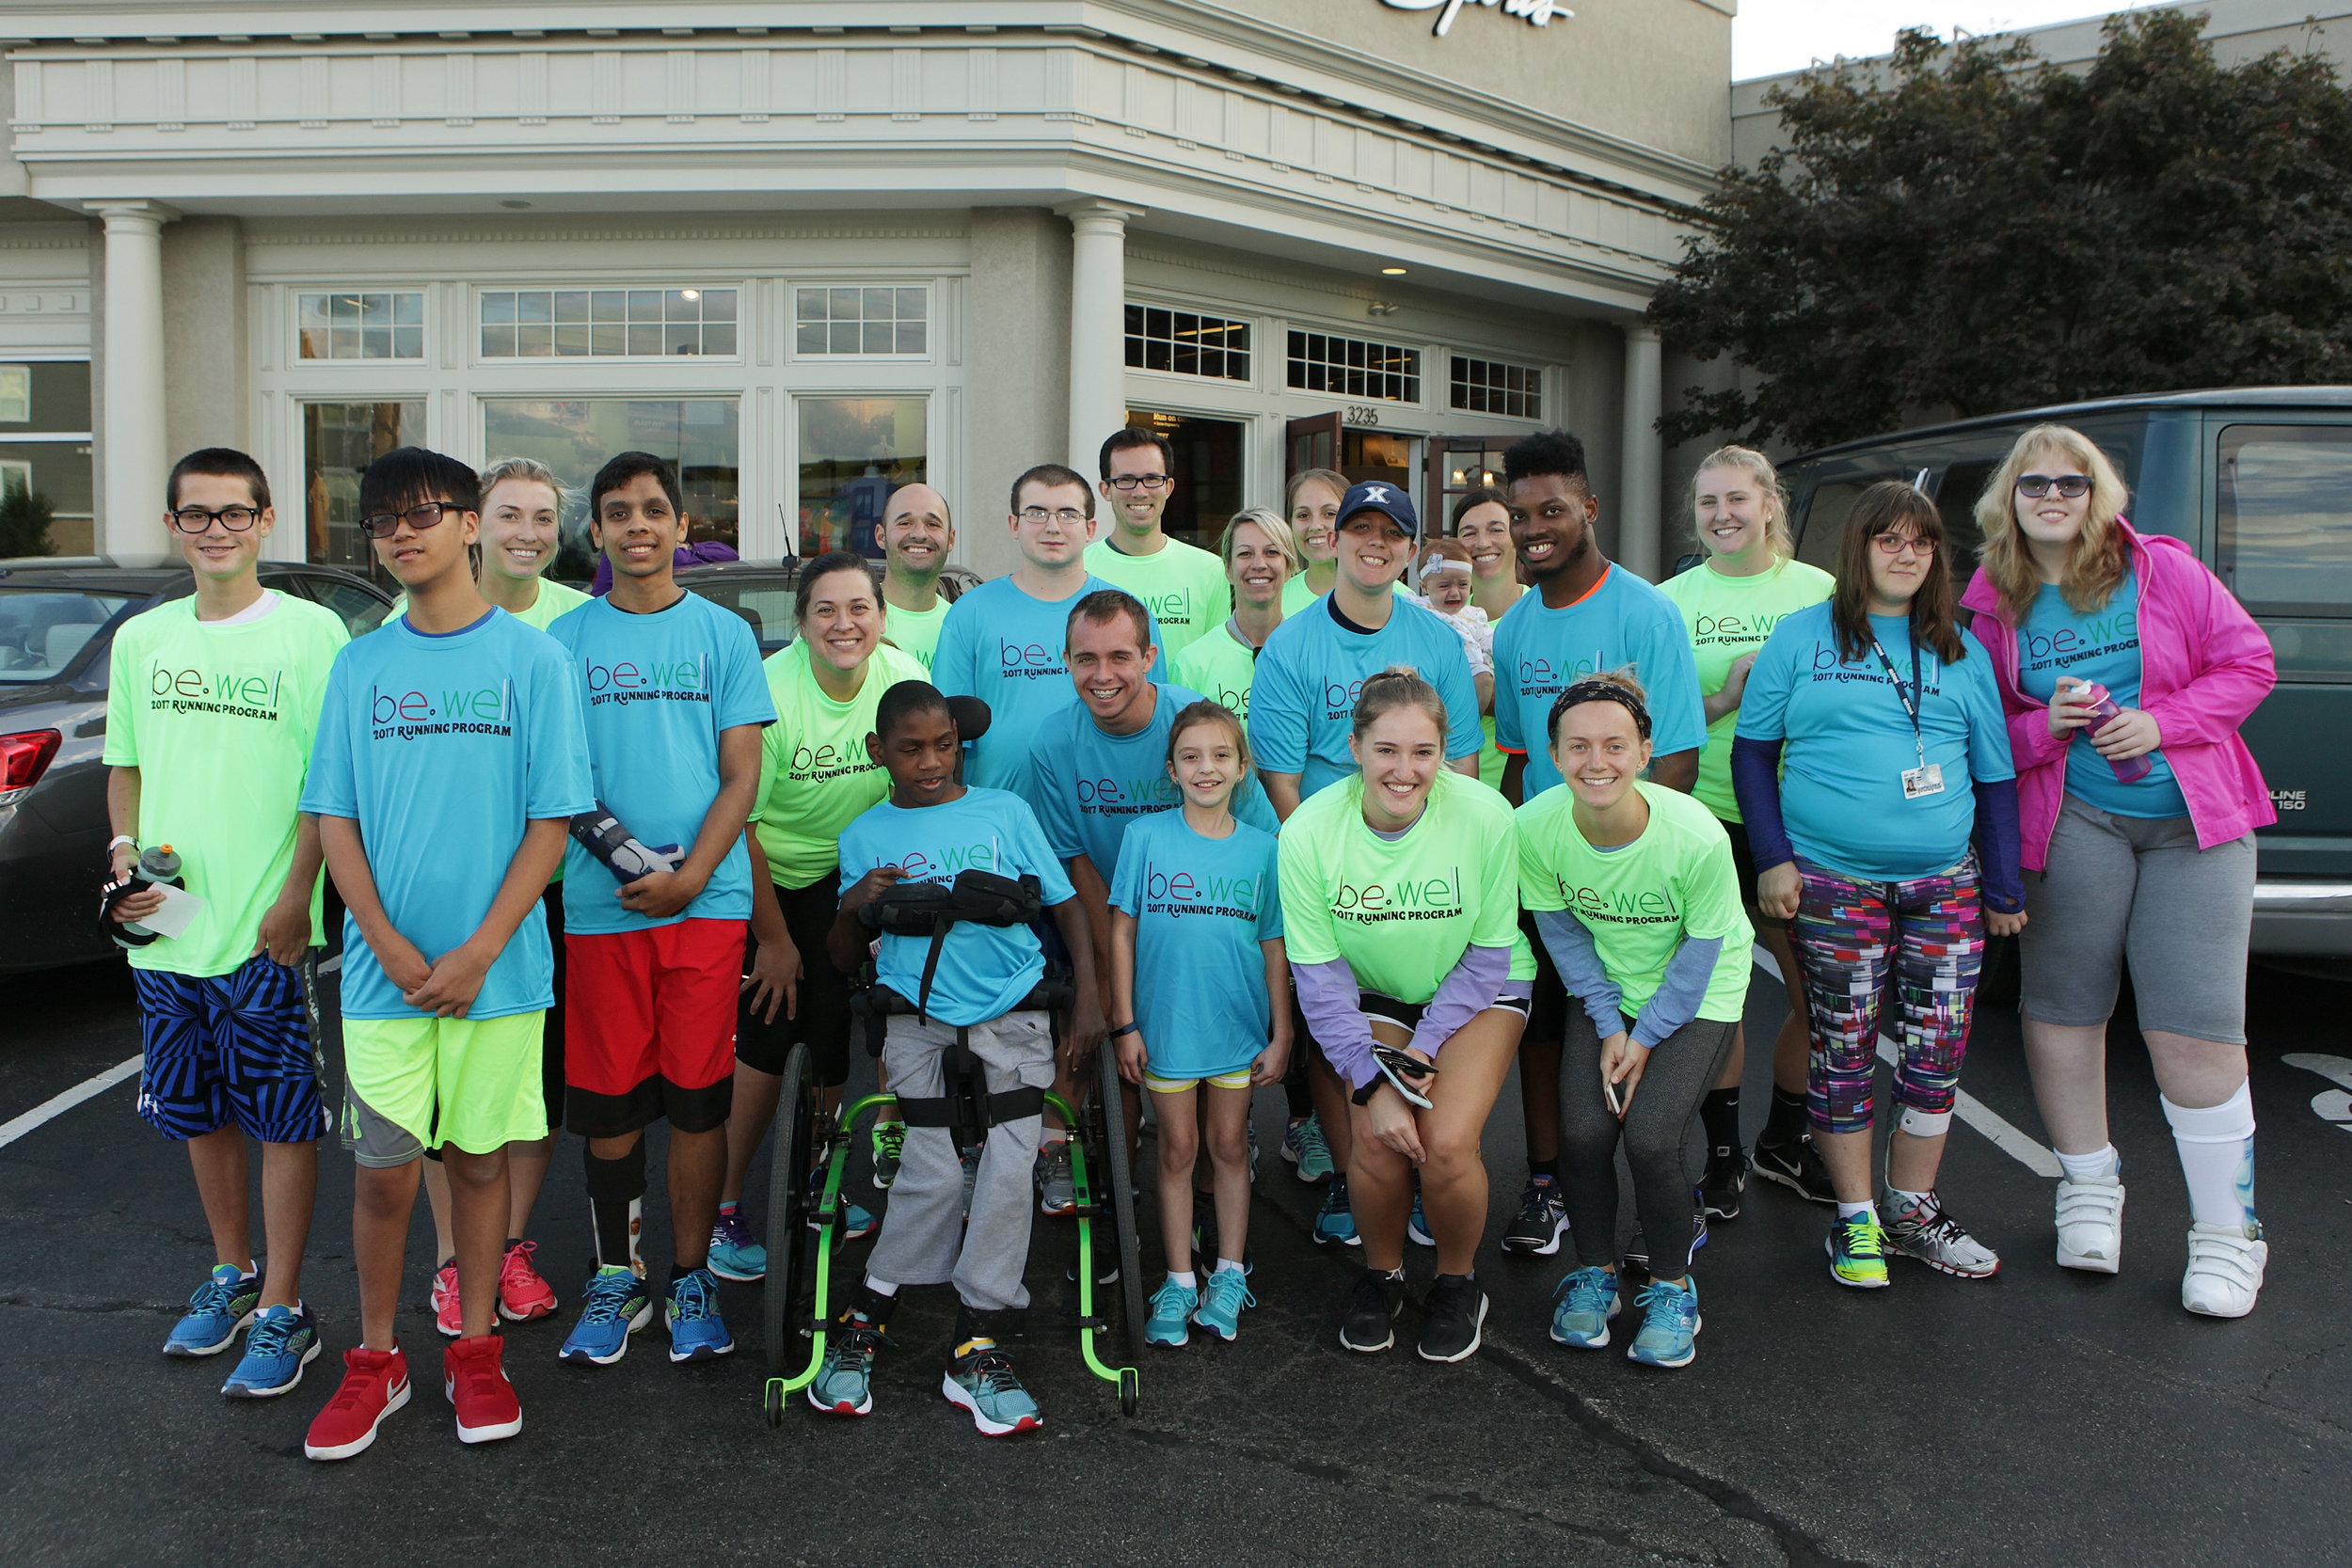 The BeWell runners and their buddies meet every Wednesday and Saturday at Fleet Feet Sports in Oakley.